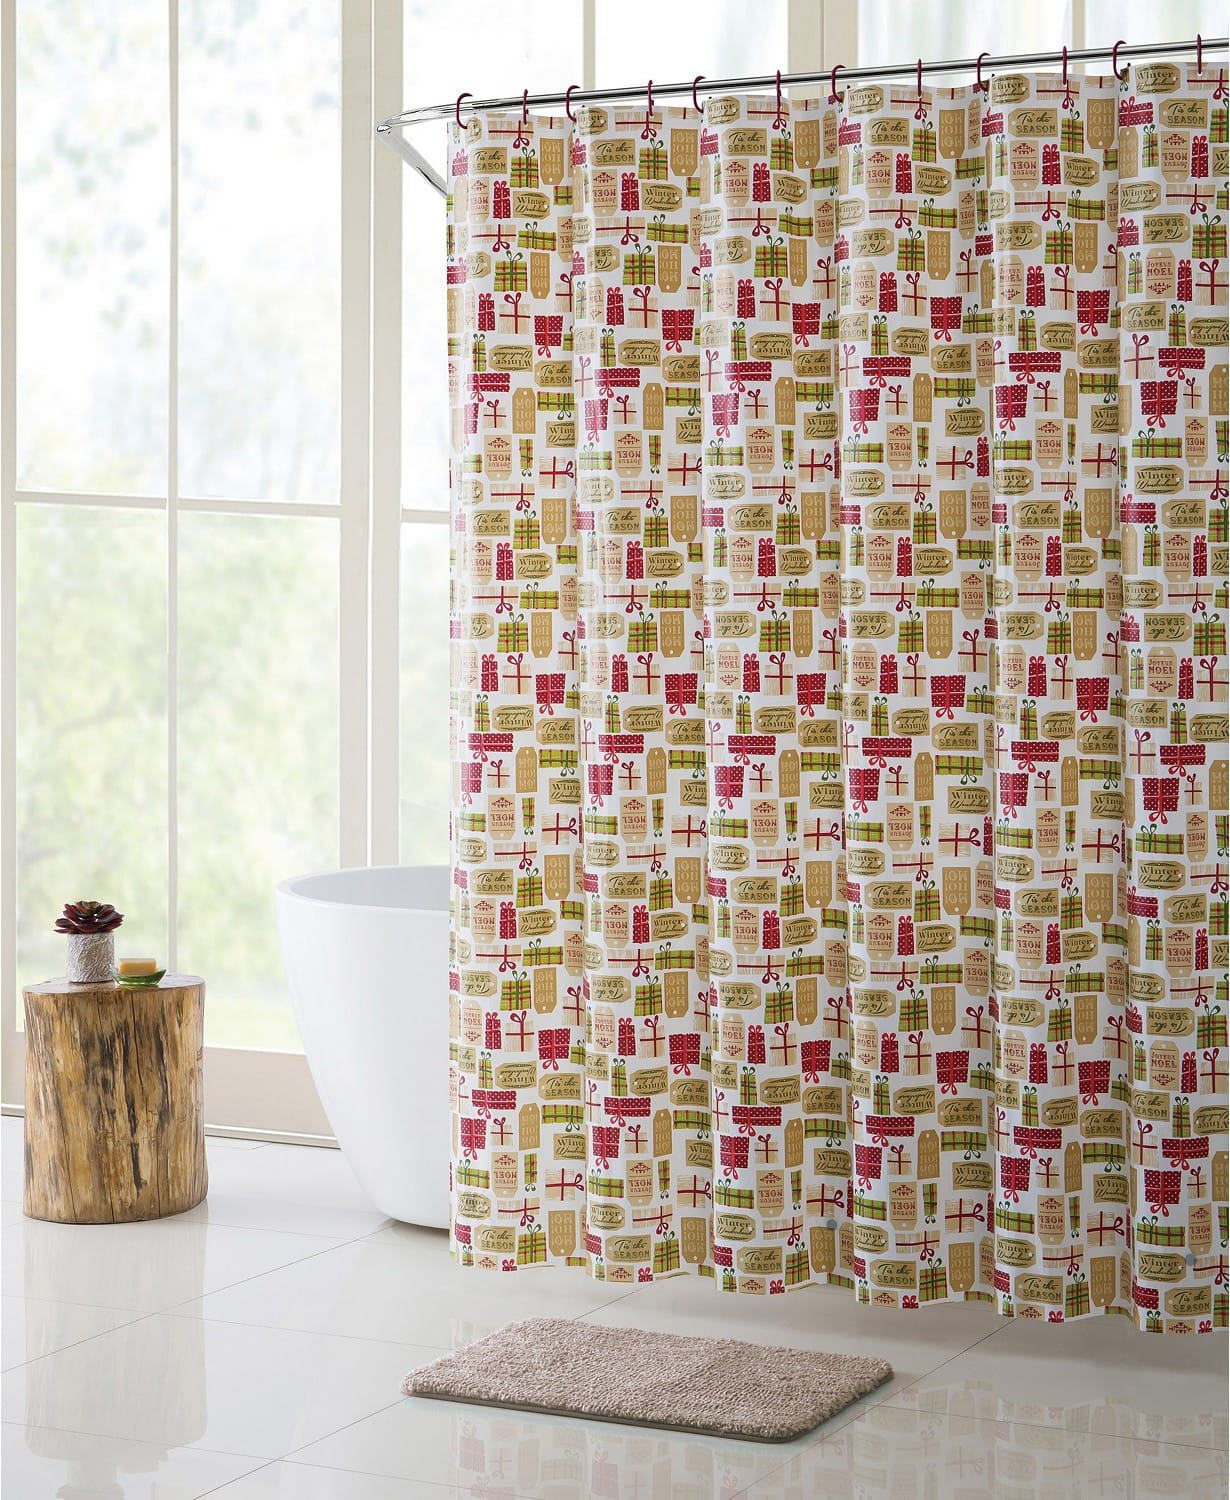 Bath Set Merry Gifts (Shower Curtain, Hooks, Rug) $13.99 & More - Macy's - Free Shipping